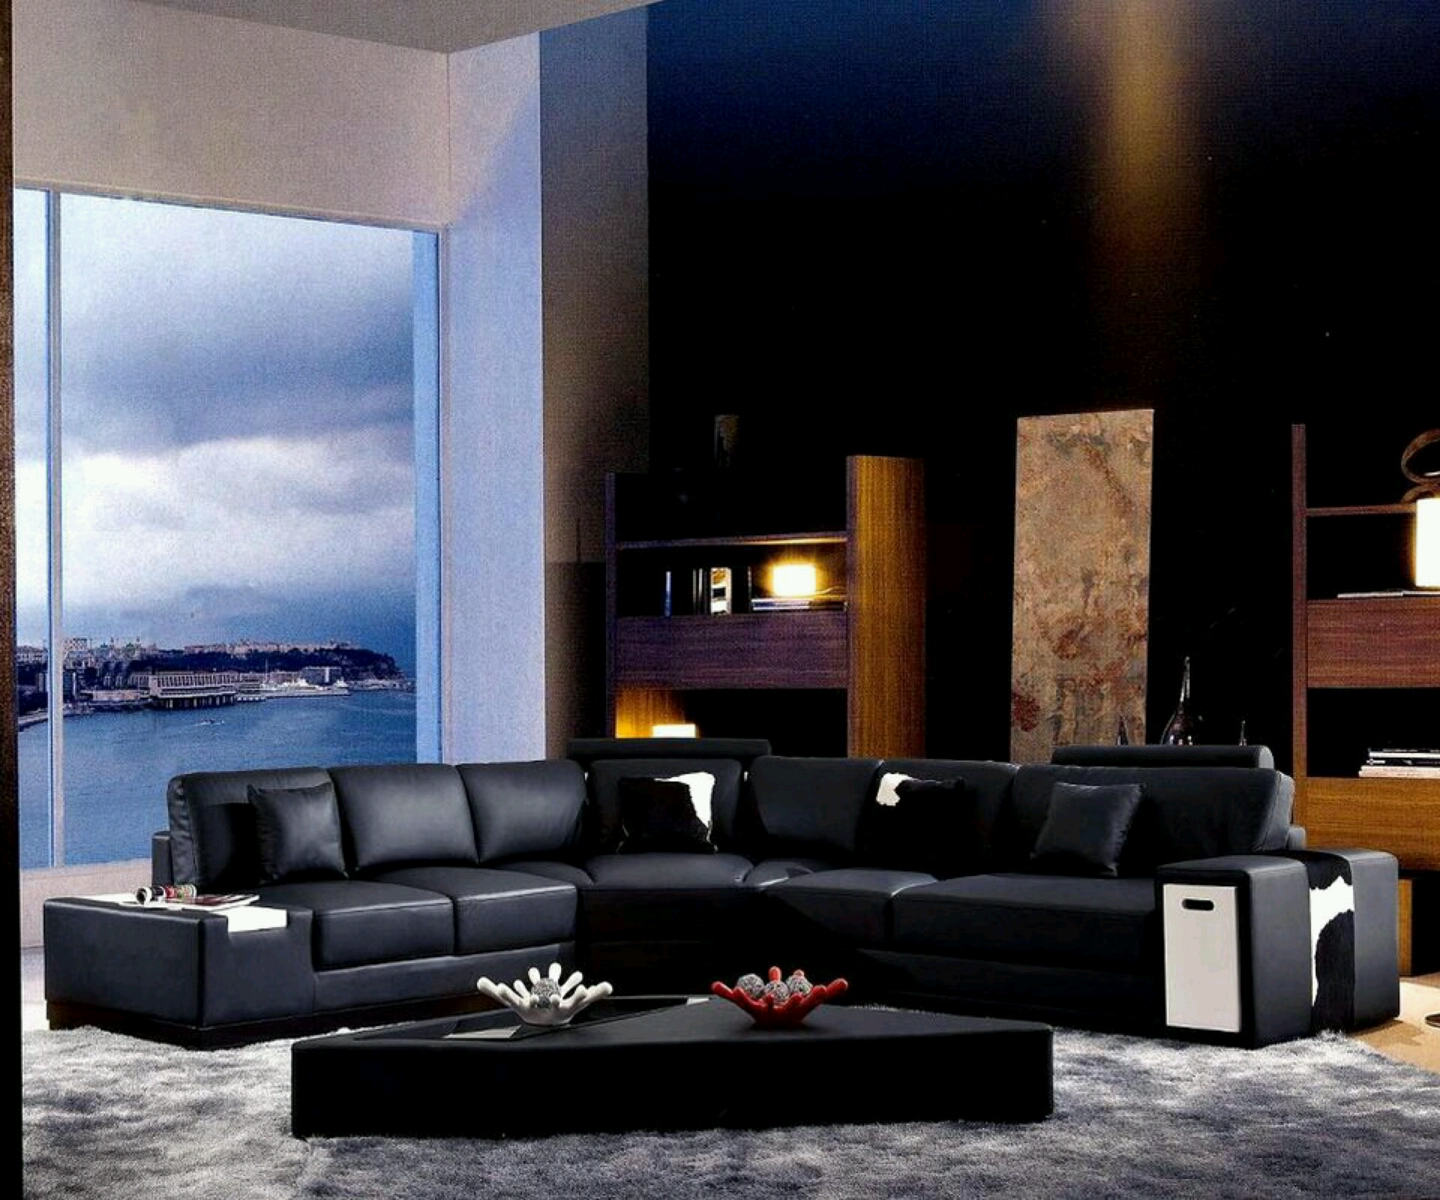 New home designs latest luxury living rooms interior modern designs ideas - Living room decor modern ...